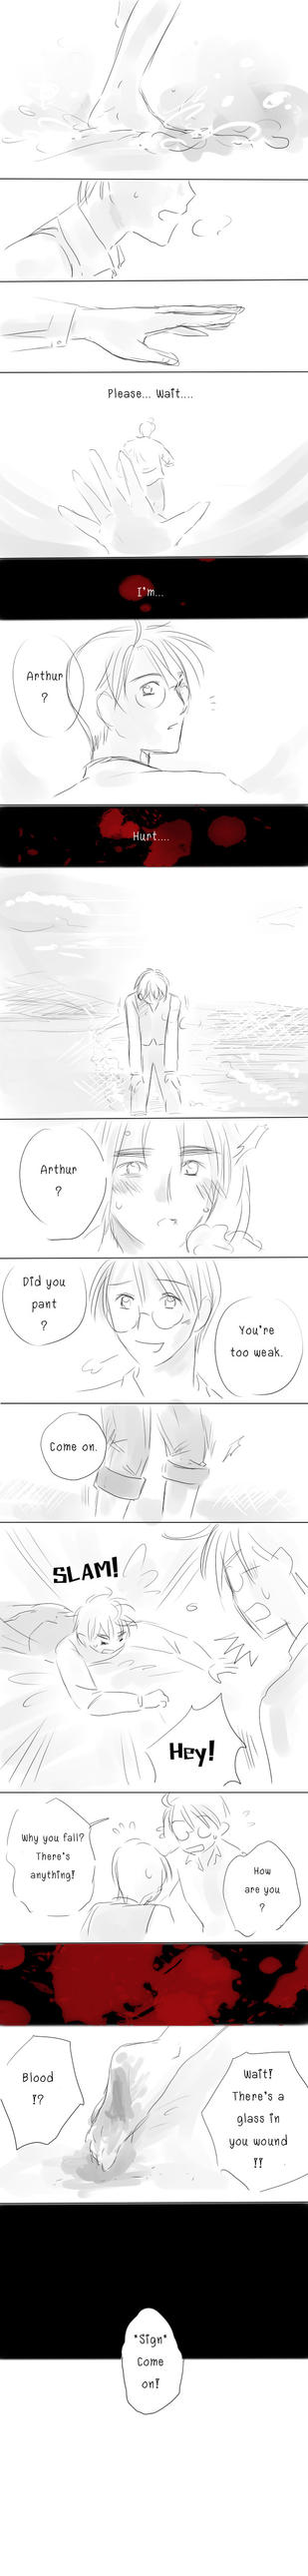 APH-Hetalia Fairy Tale part2 2/3 by ruralrural